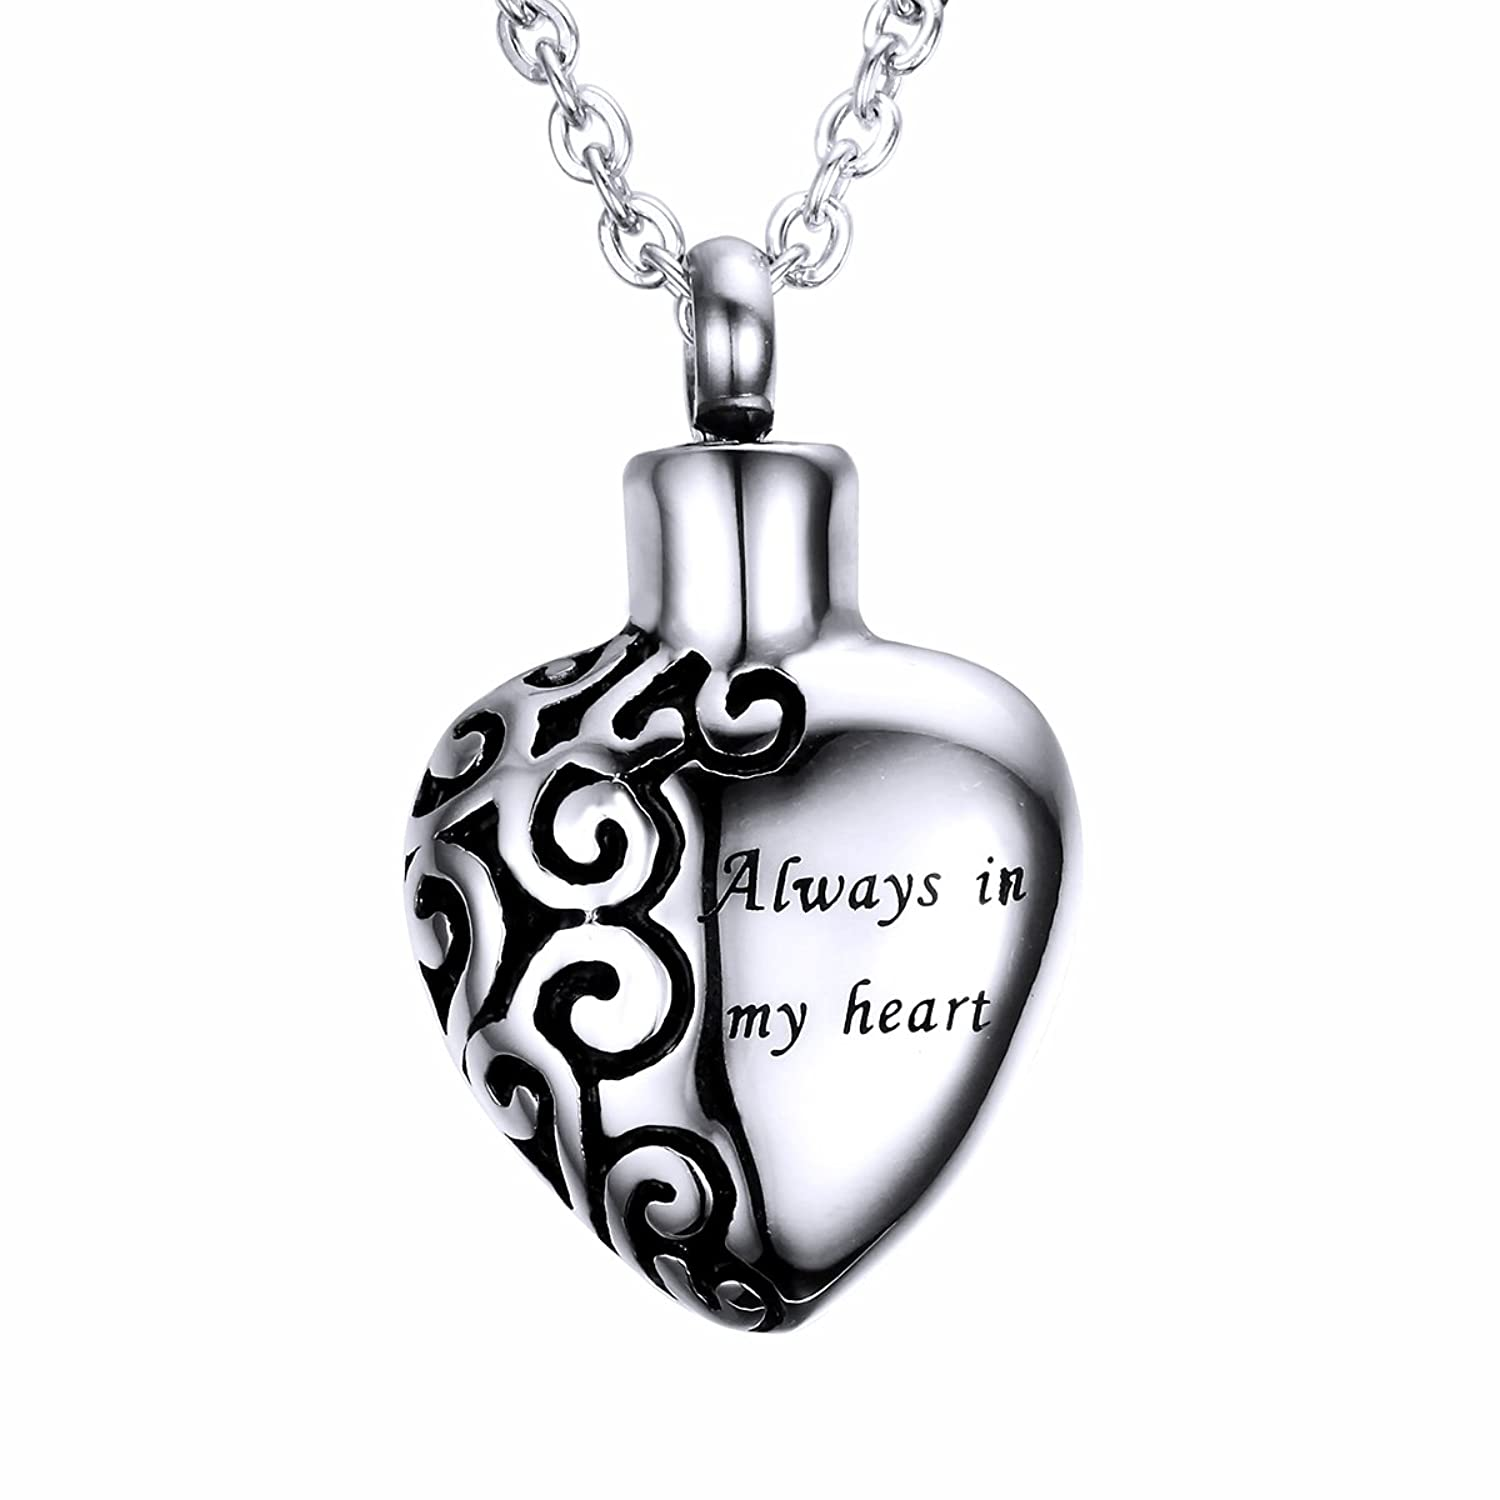 ash jewelry store bag gift keepsake product cremation memorial urn pendant lily enamel waterproof with motorcycle and stainless chain steel shield necklace black